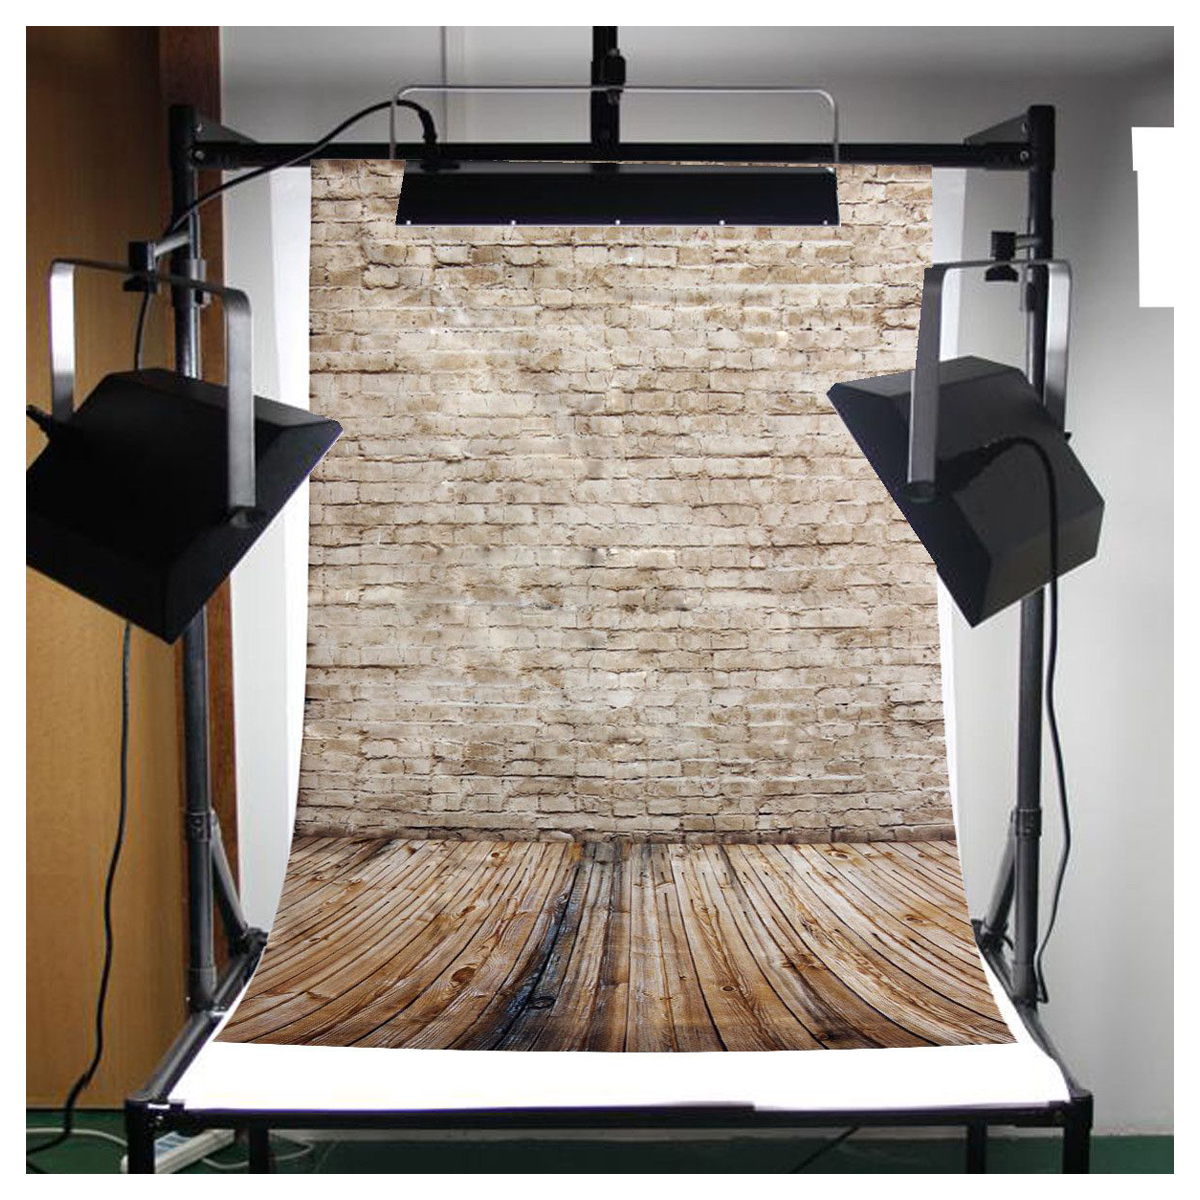 CES-3x5FT Brick Wall Photography Backdrop Photo Wooden Floor Studio Background Props Light Grey 3x5ft crack gray wall brick wall photography backdrop background photo studio